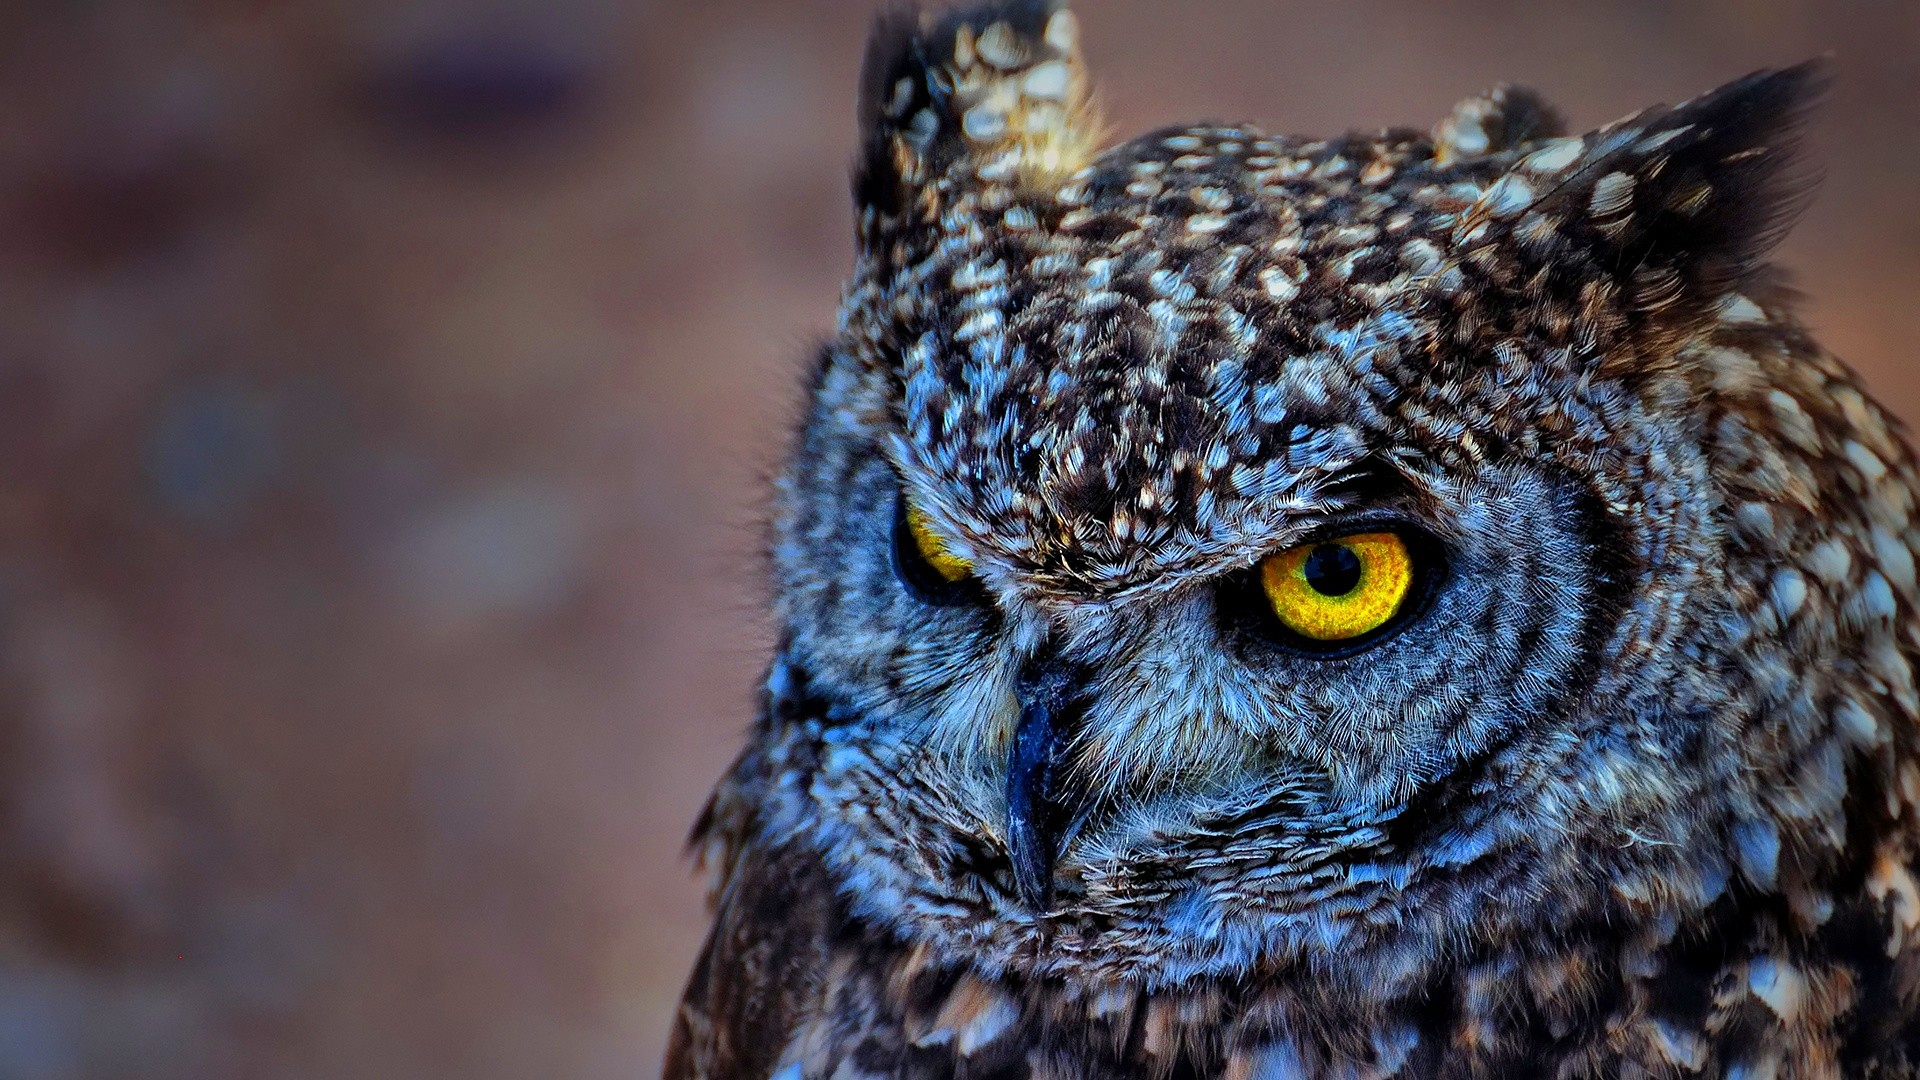 Cute Owl Wallpaper Collection For Free Download